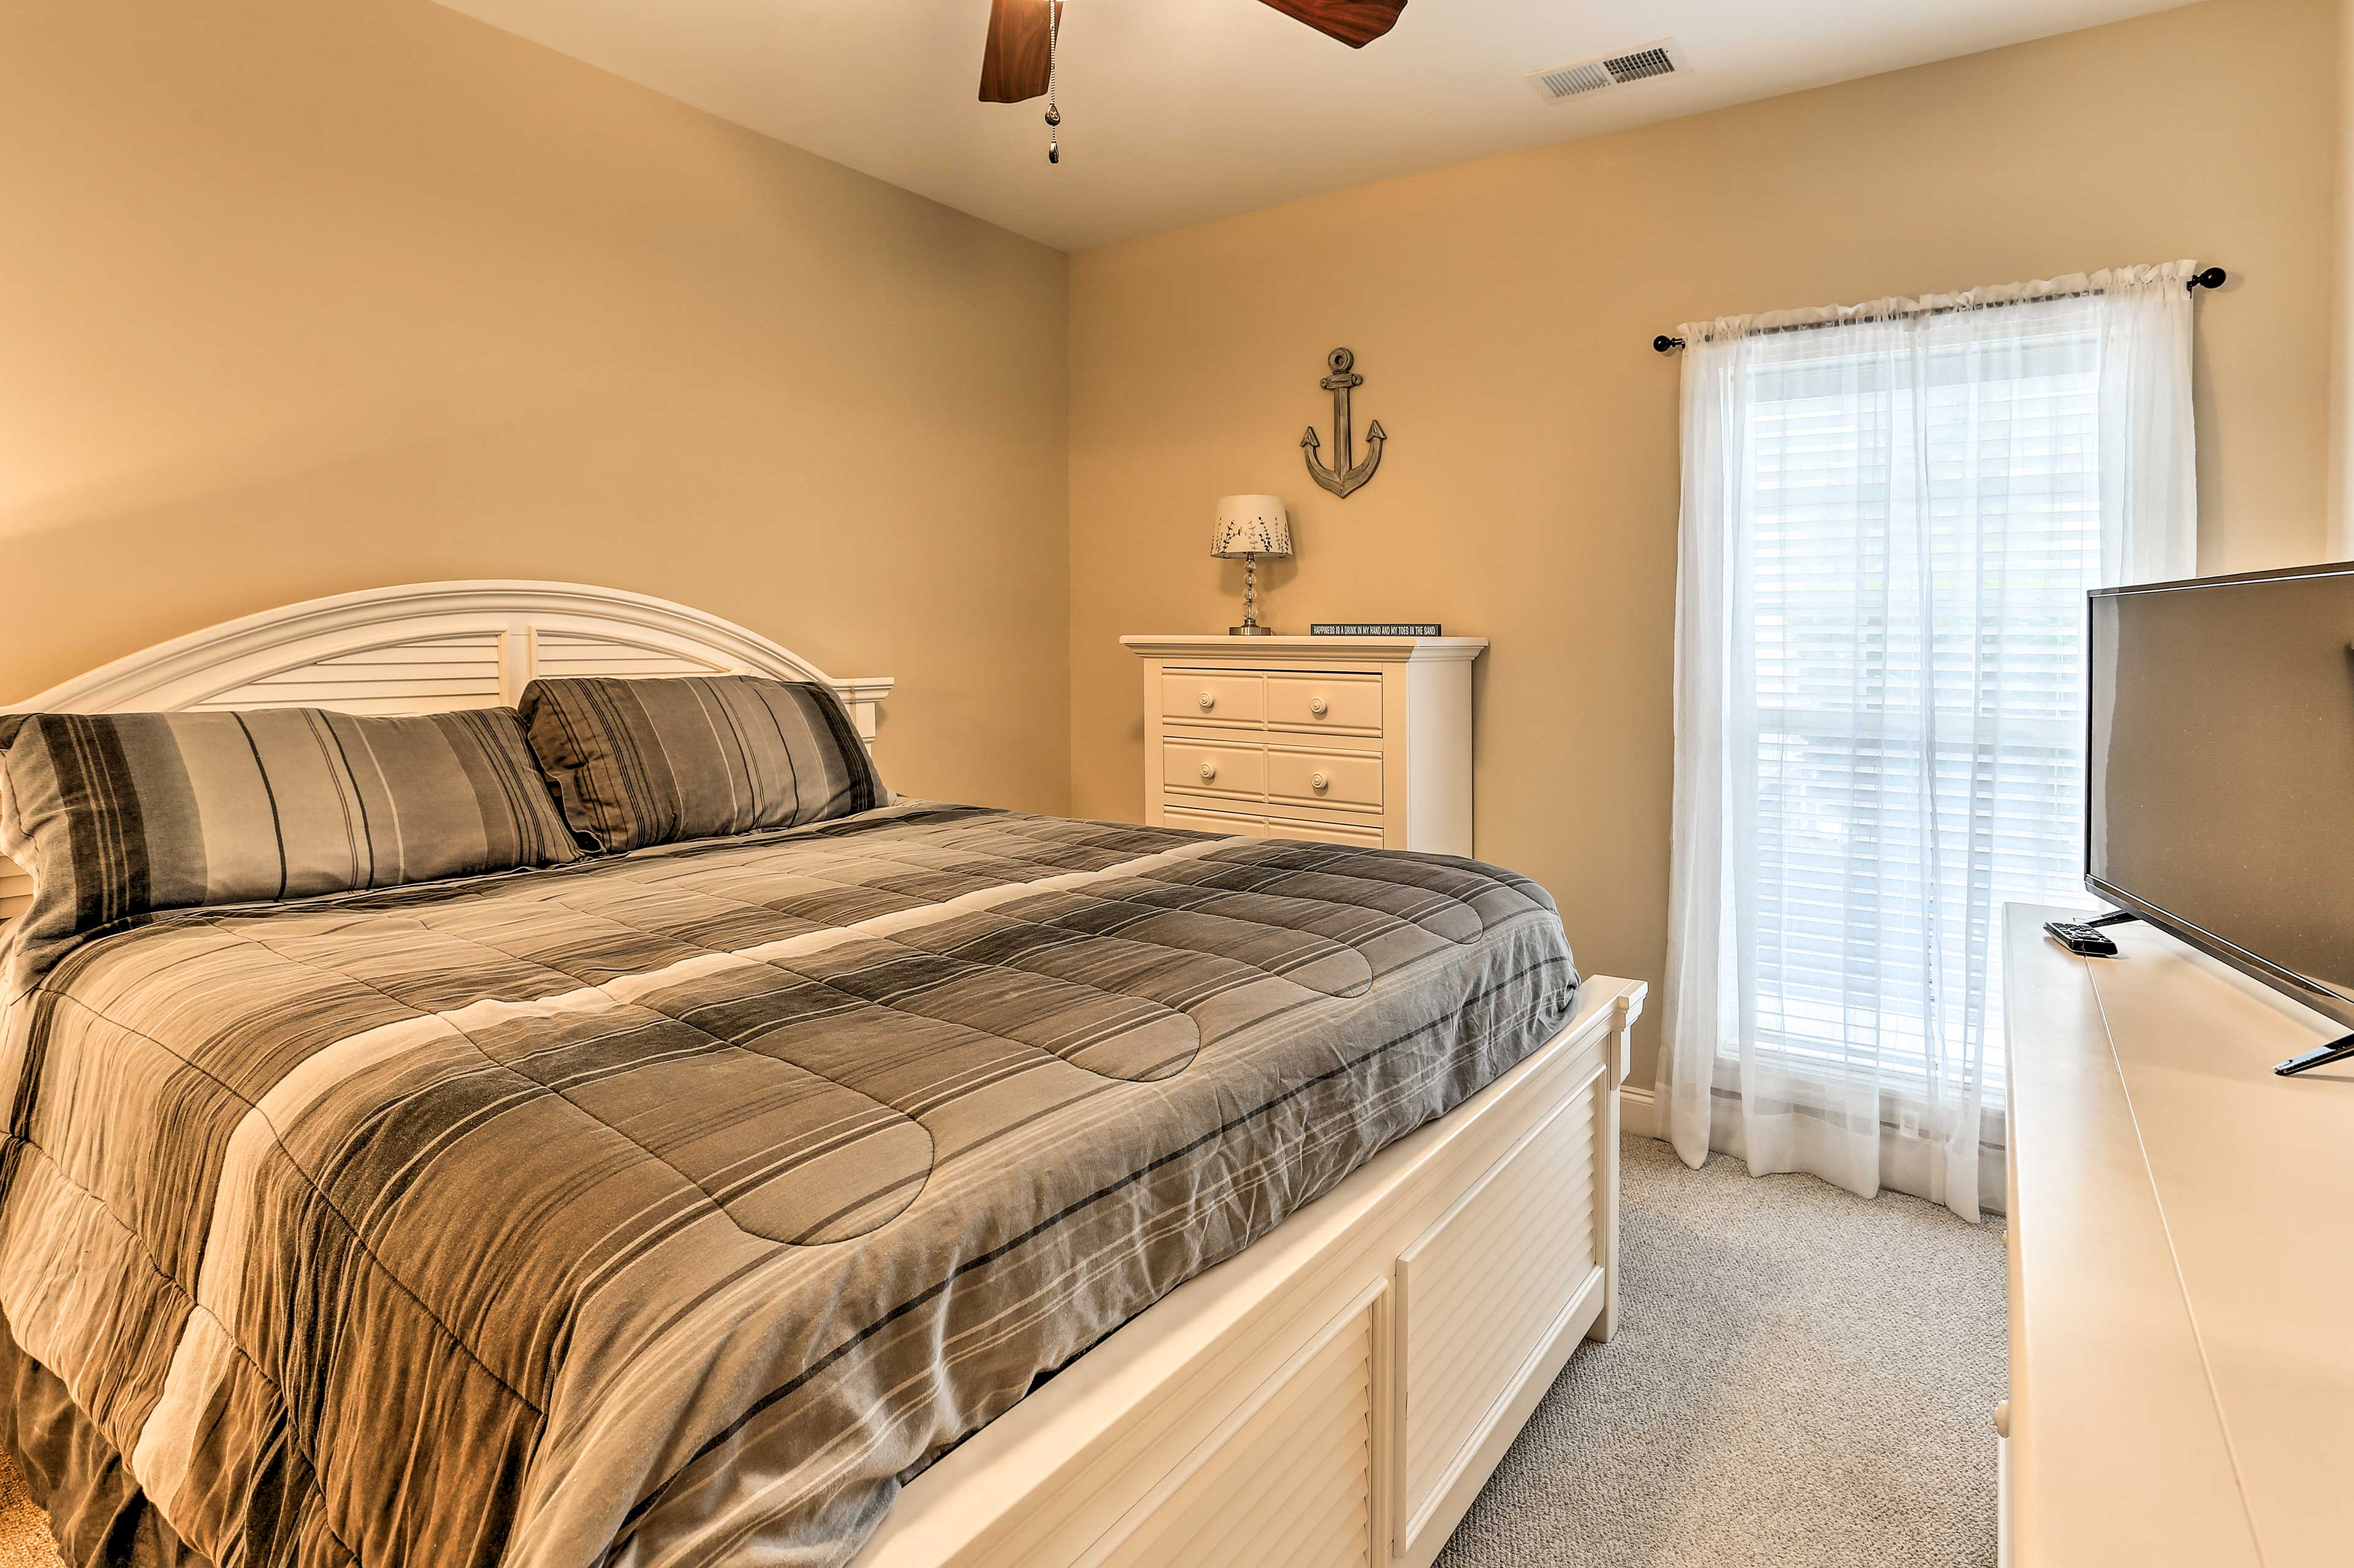 You're sure to get a peaceful night's rest in one of the 2 bedrooms.